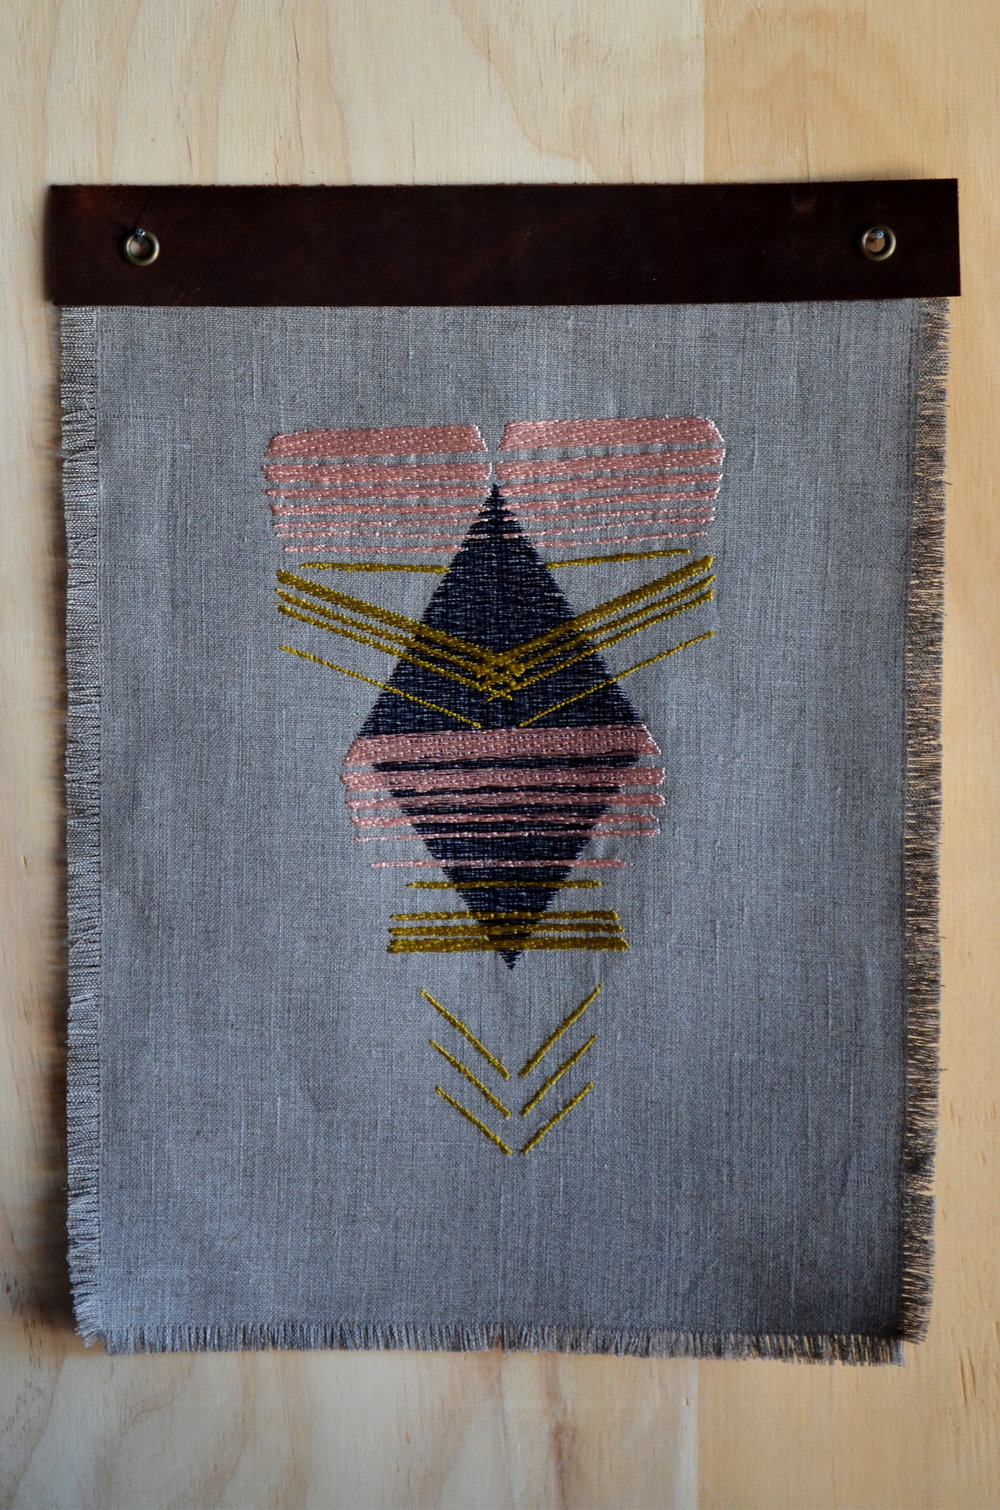 style-revolutionary-threadbound-clare-frost-embroidery.jpg